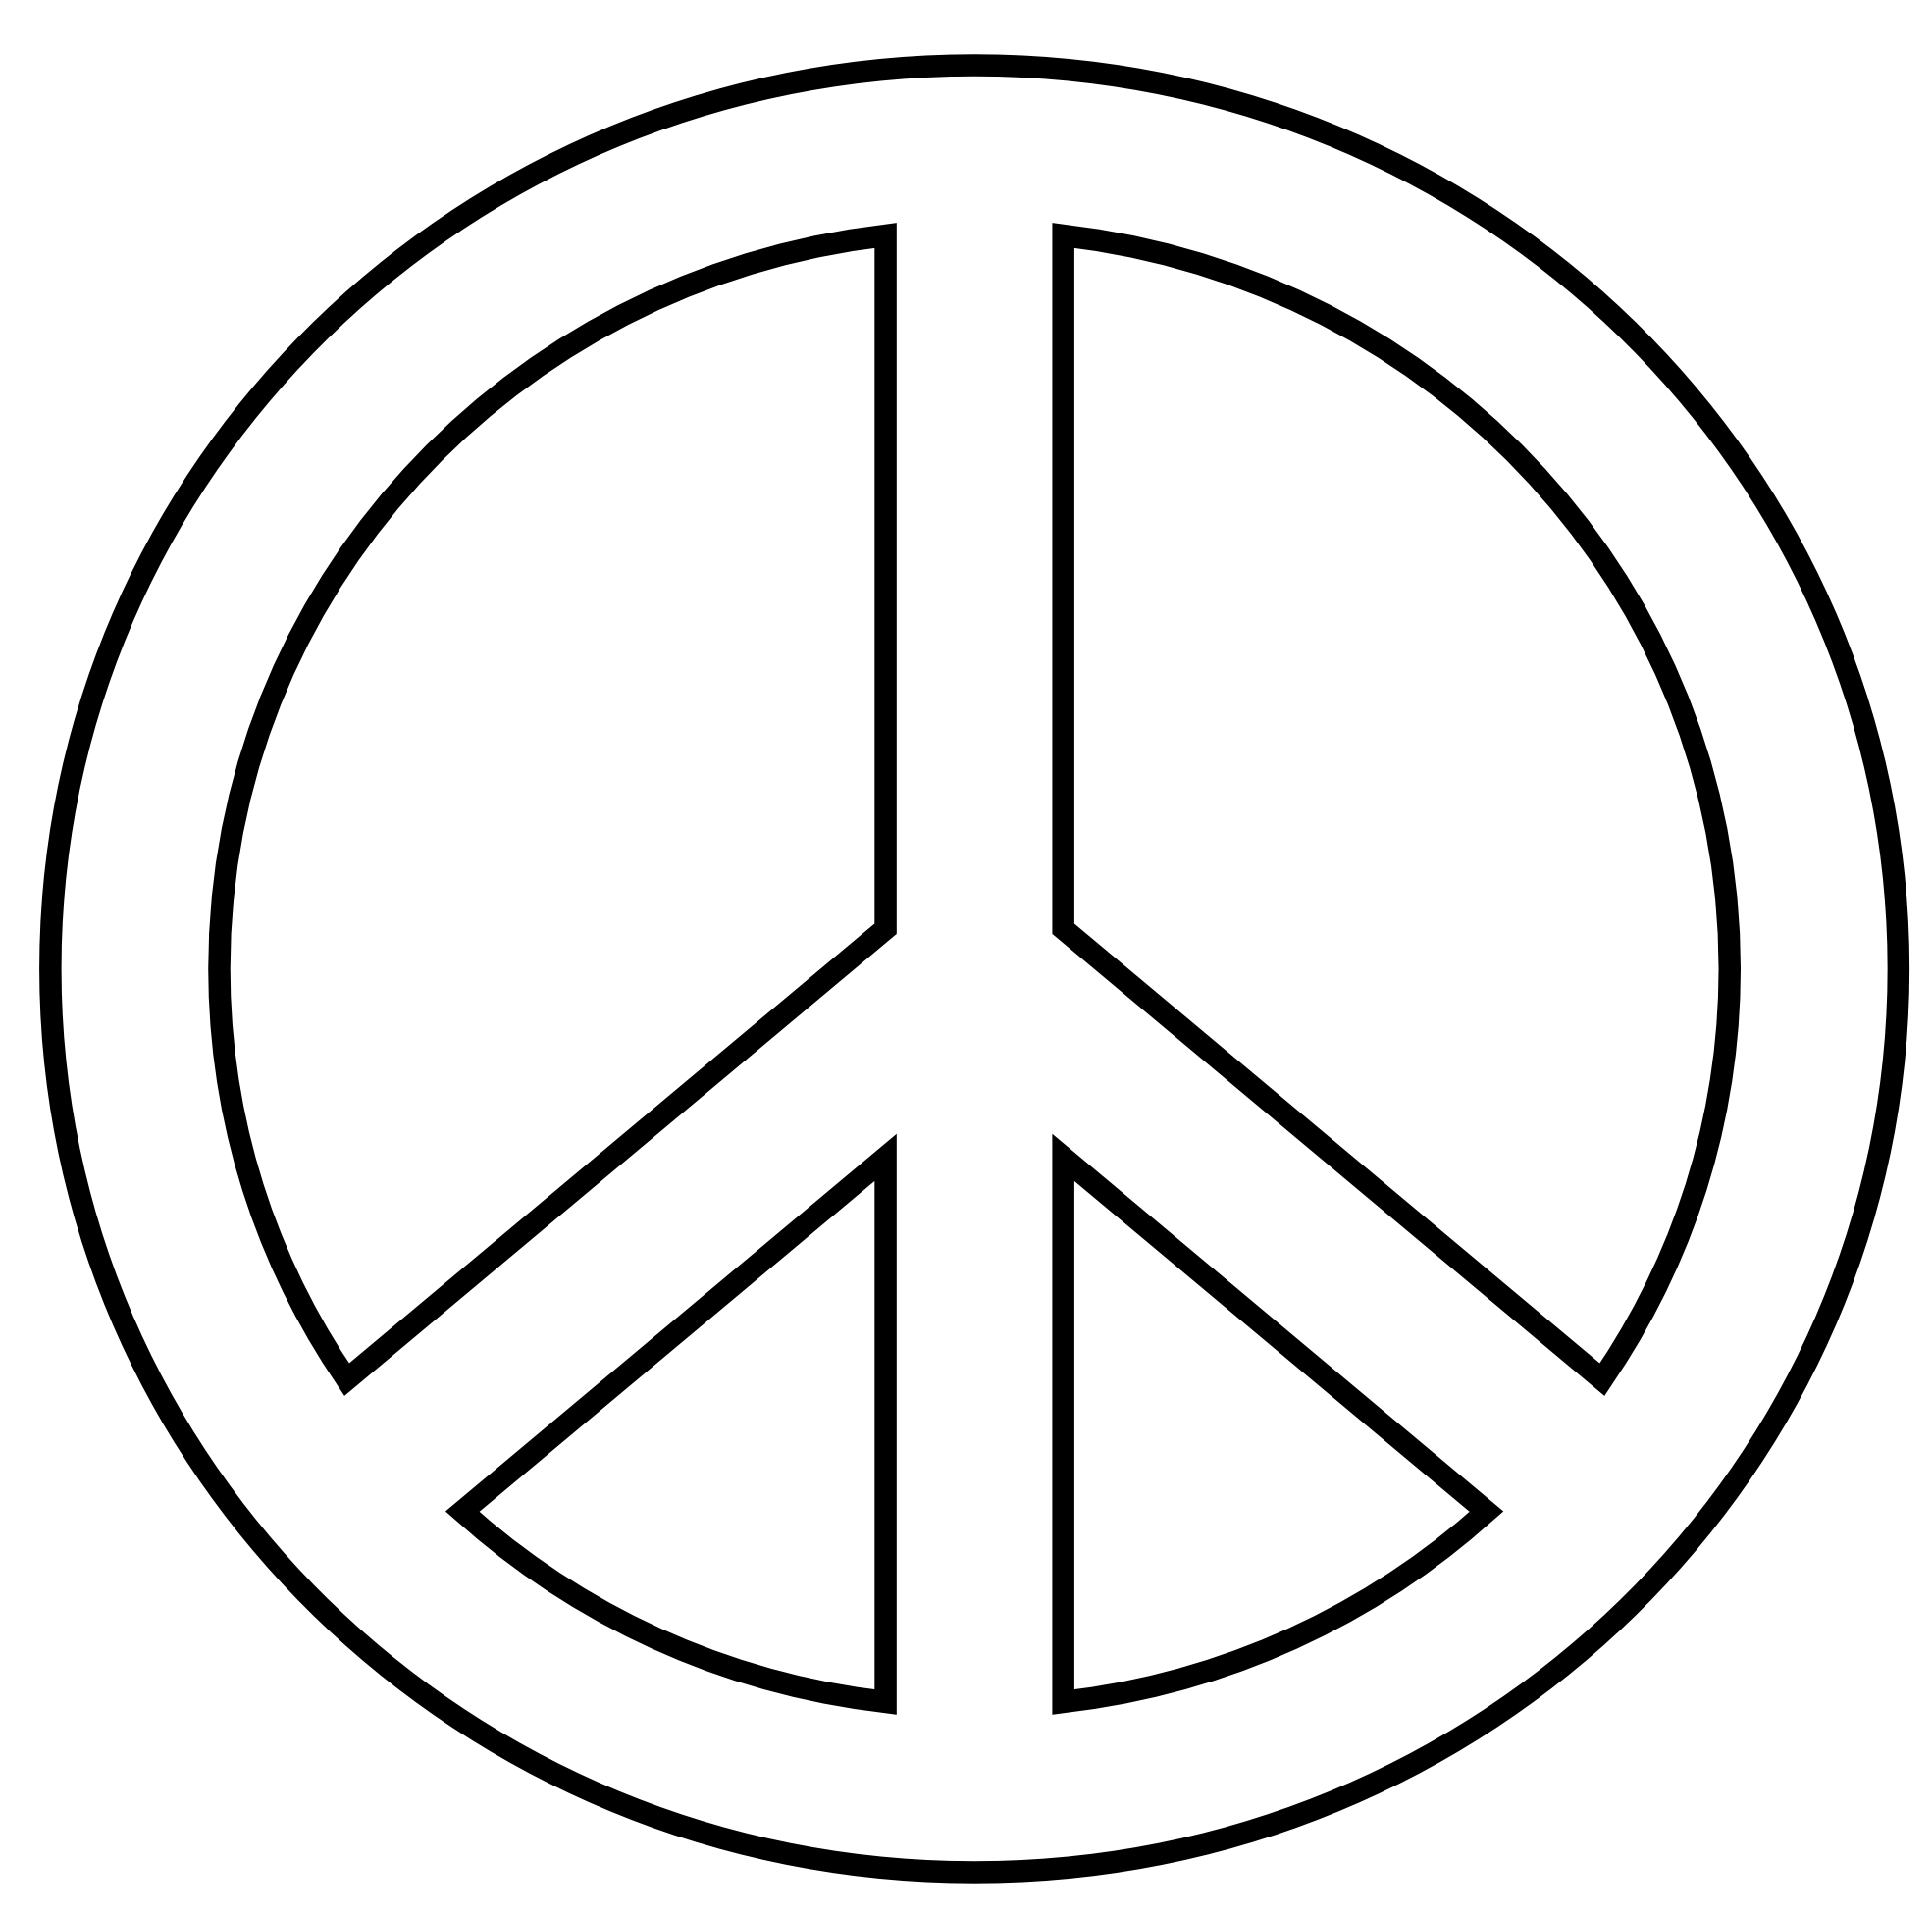 Hand clipart peace. Free cartoon sign download